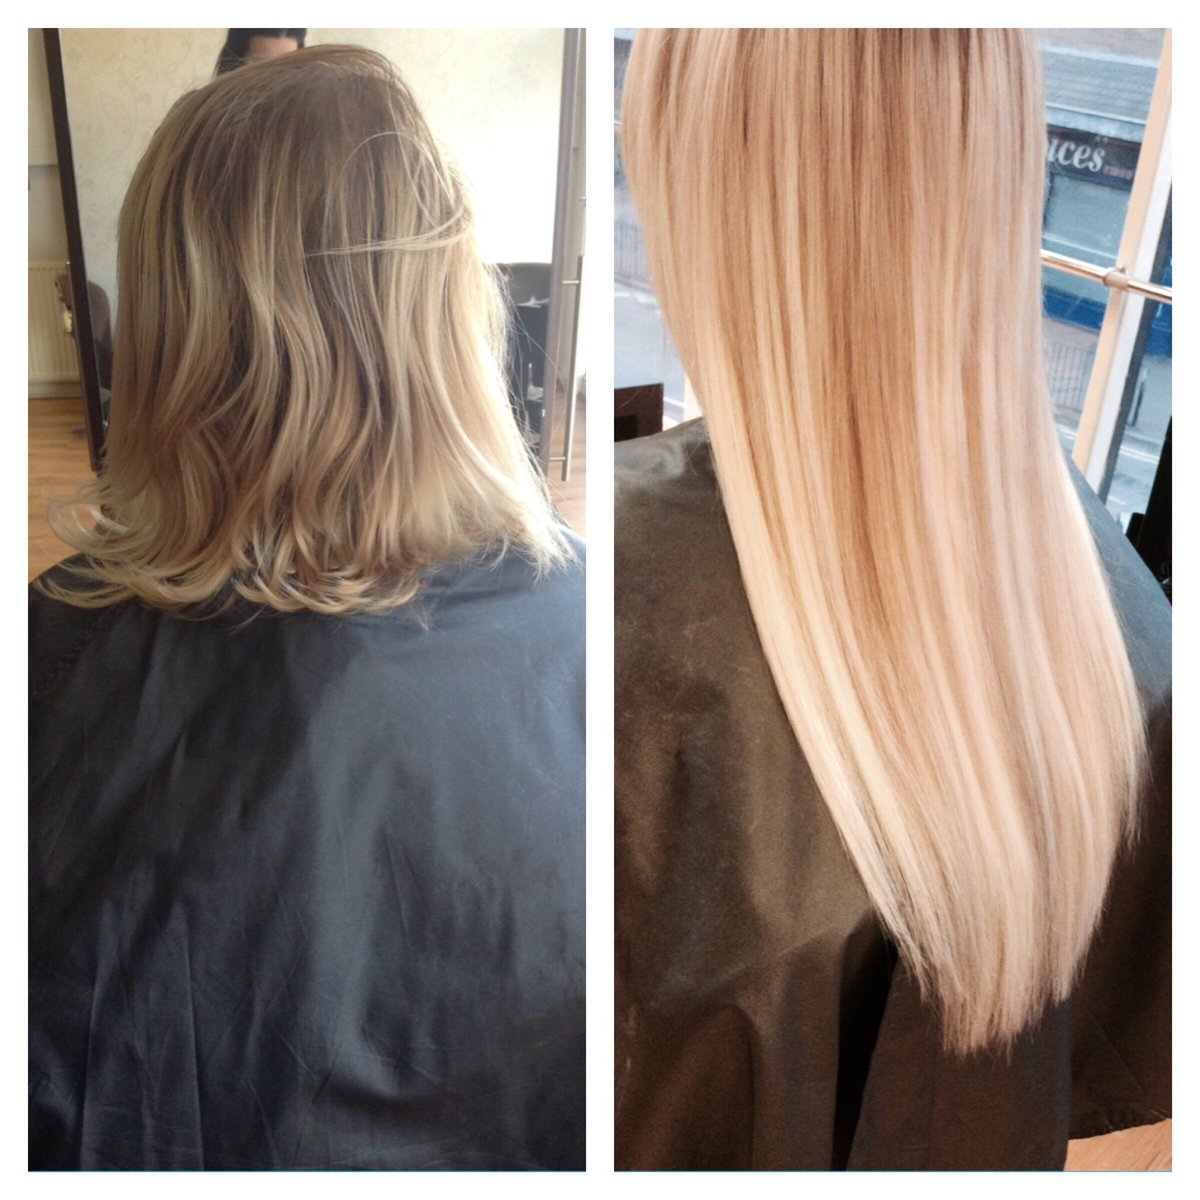 Micro ring extensions before and after